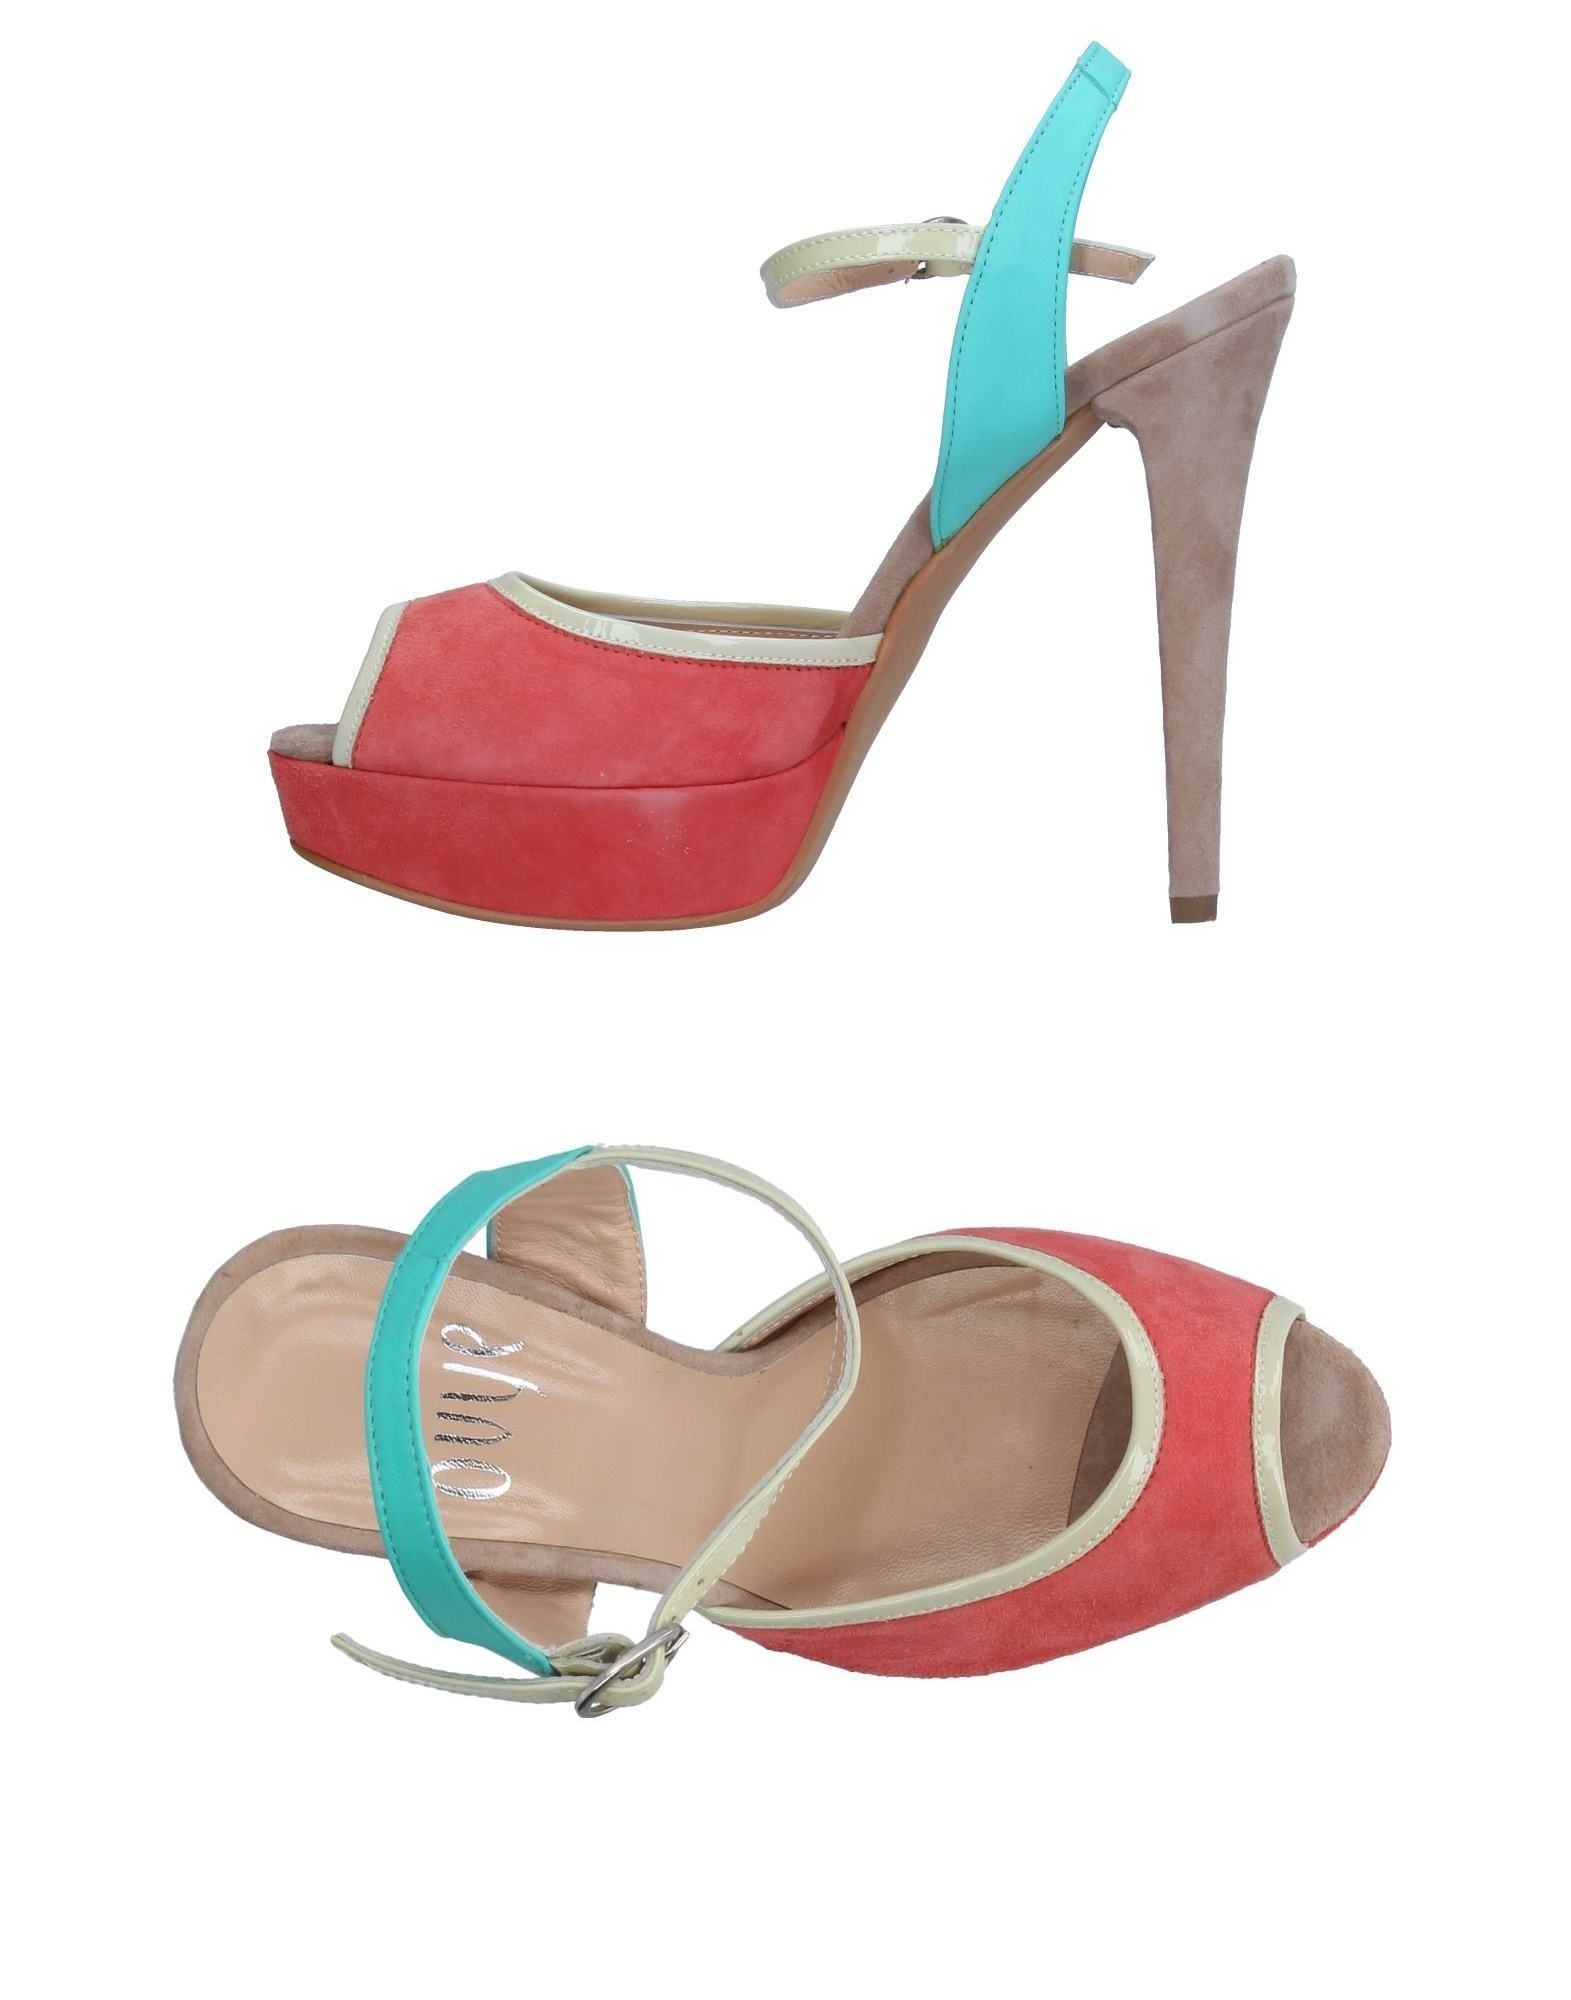 Sandales Ovye By Cristina Lucchi Femme - Sandales Ovye By Cristina Lucchi sur